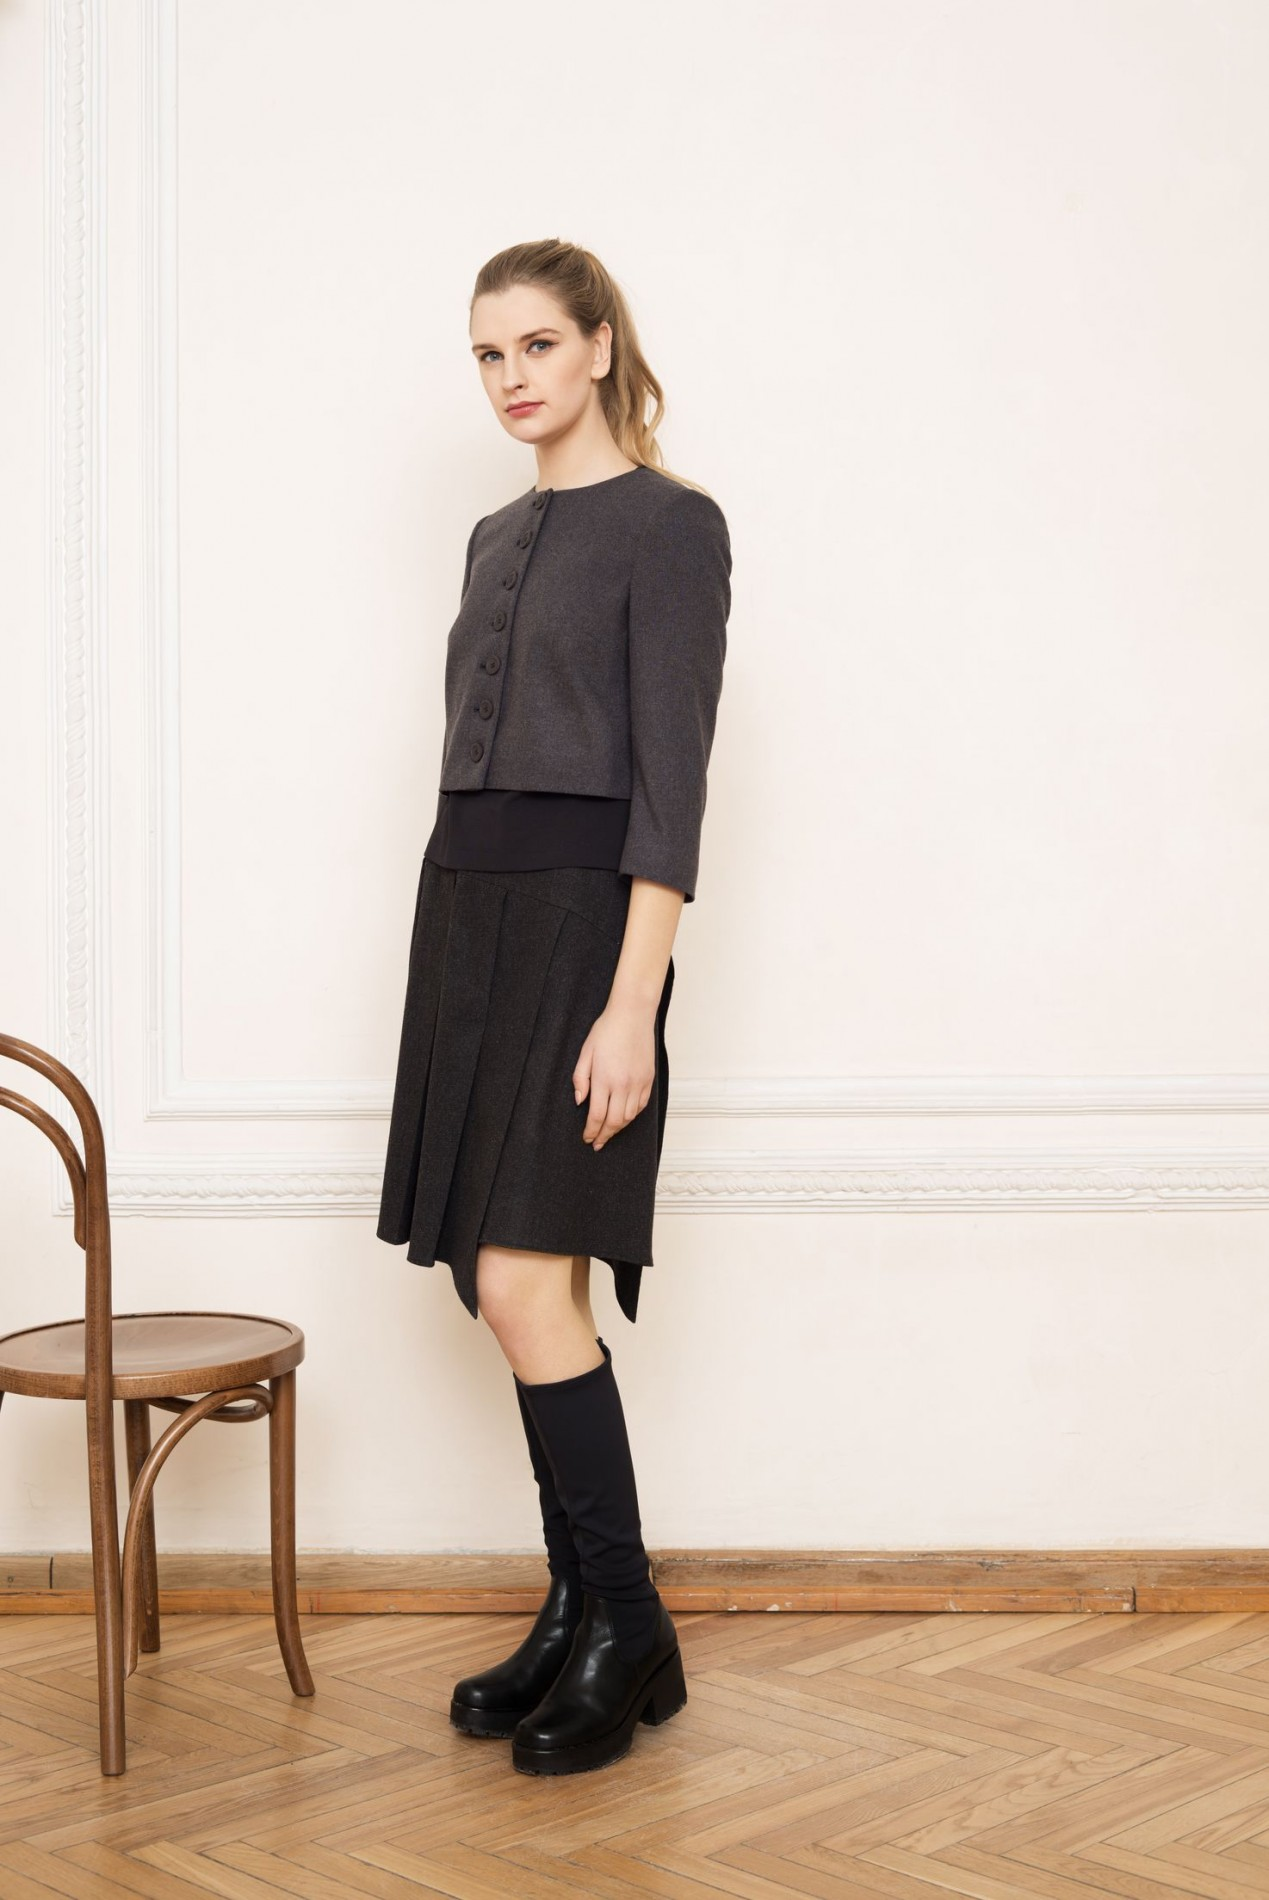 ALPS Short Jacket and ALPS Pleat Skirt